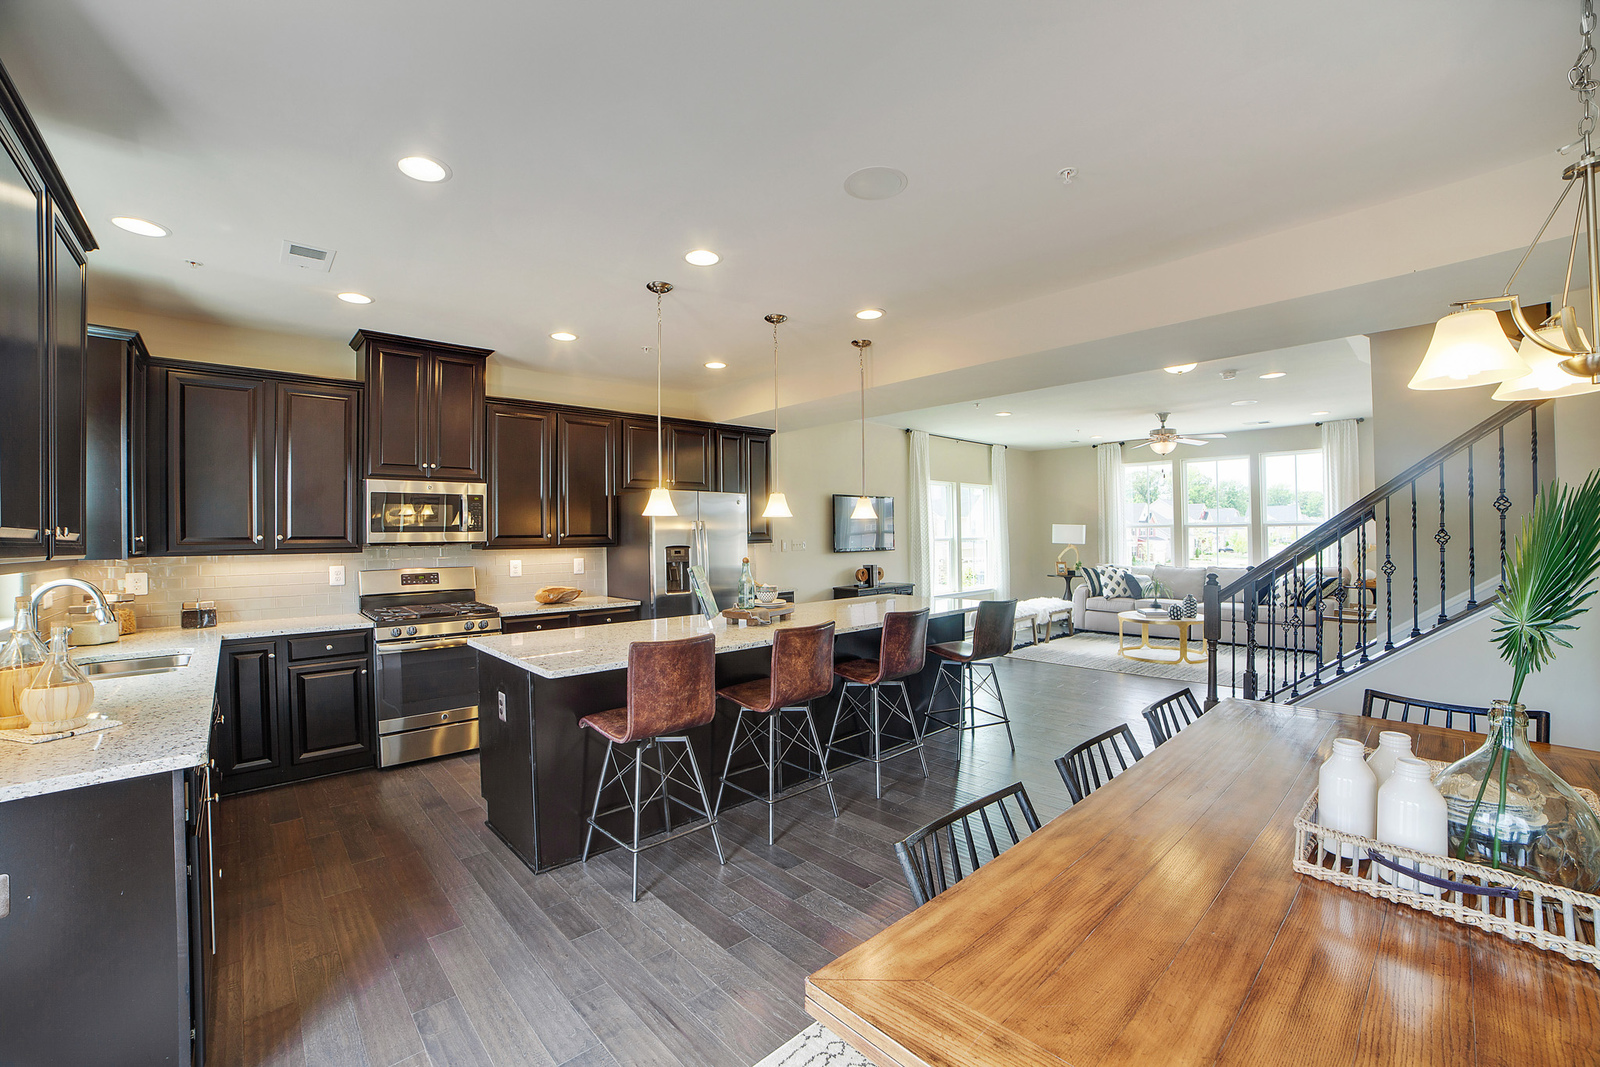 New Wexford Townhome Model for sale at Ballard Green in Owings Mills, MD